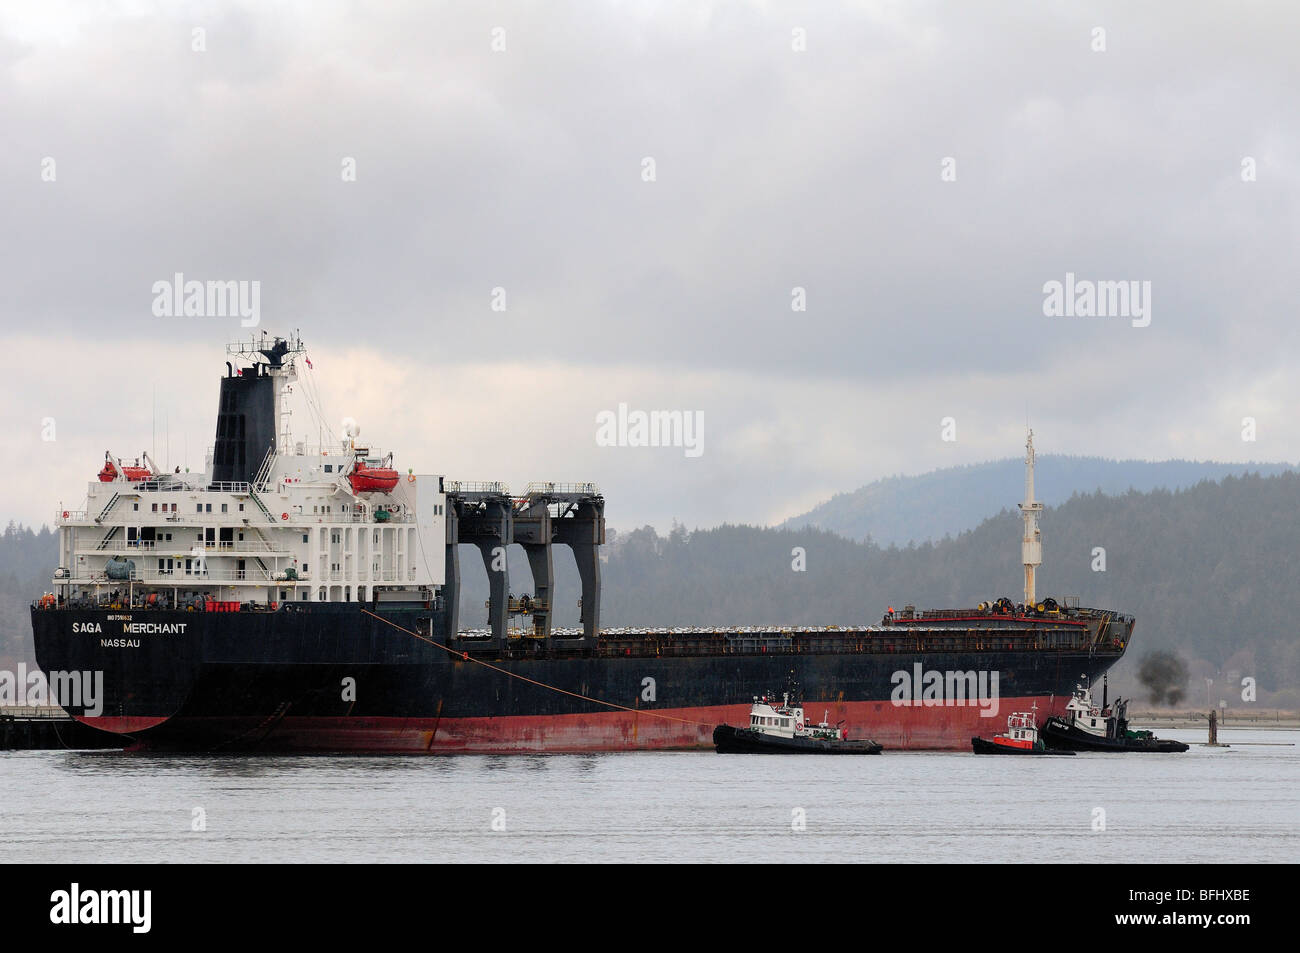 Tugs assist freighter into dock in Cowichan Bay, BC. - Stock Image